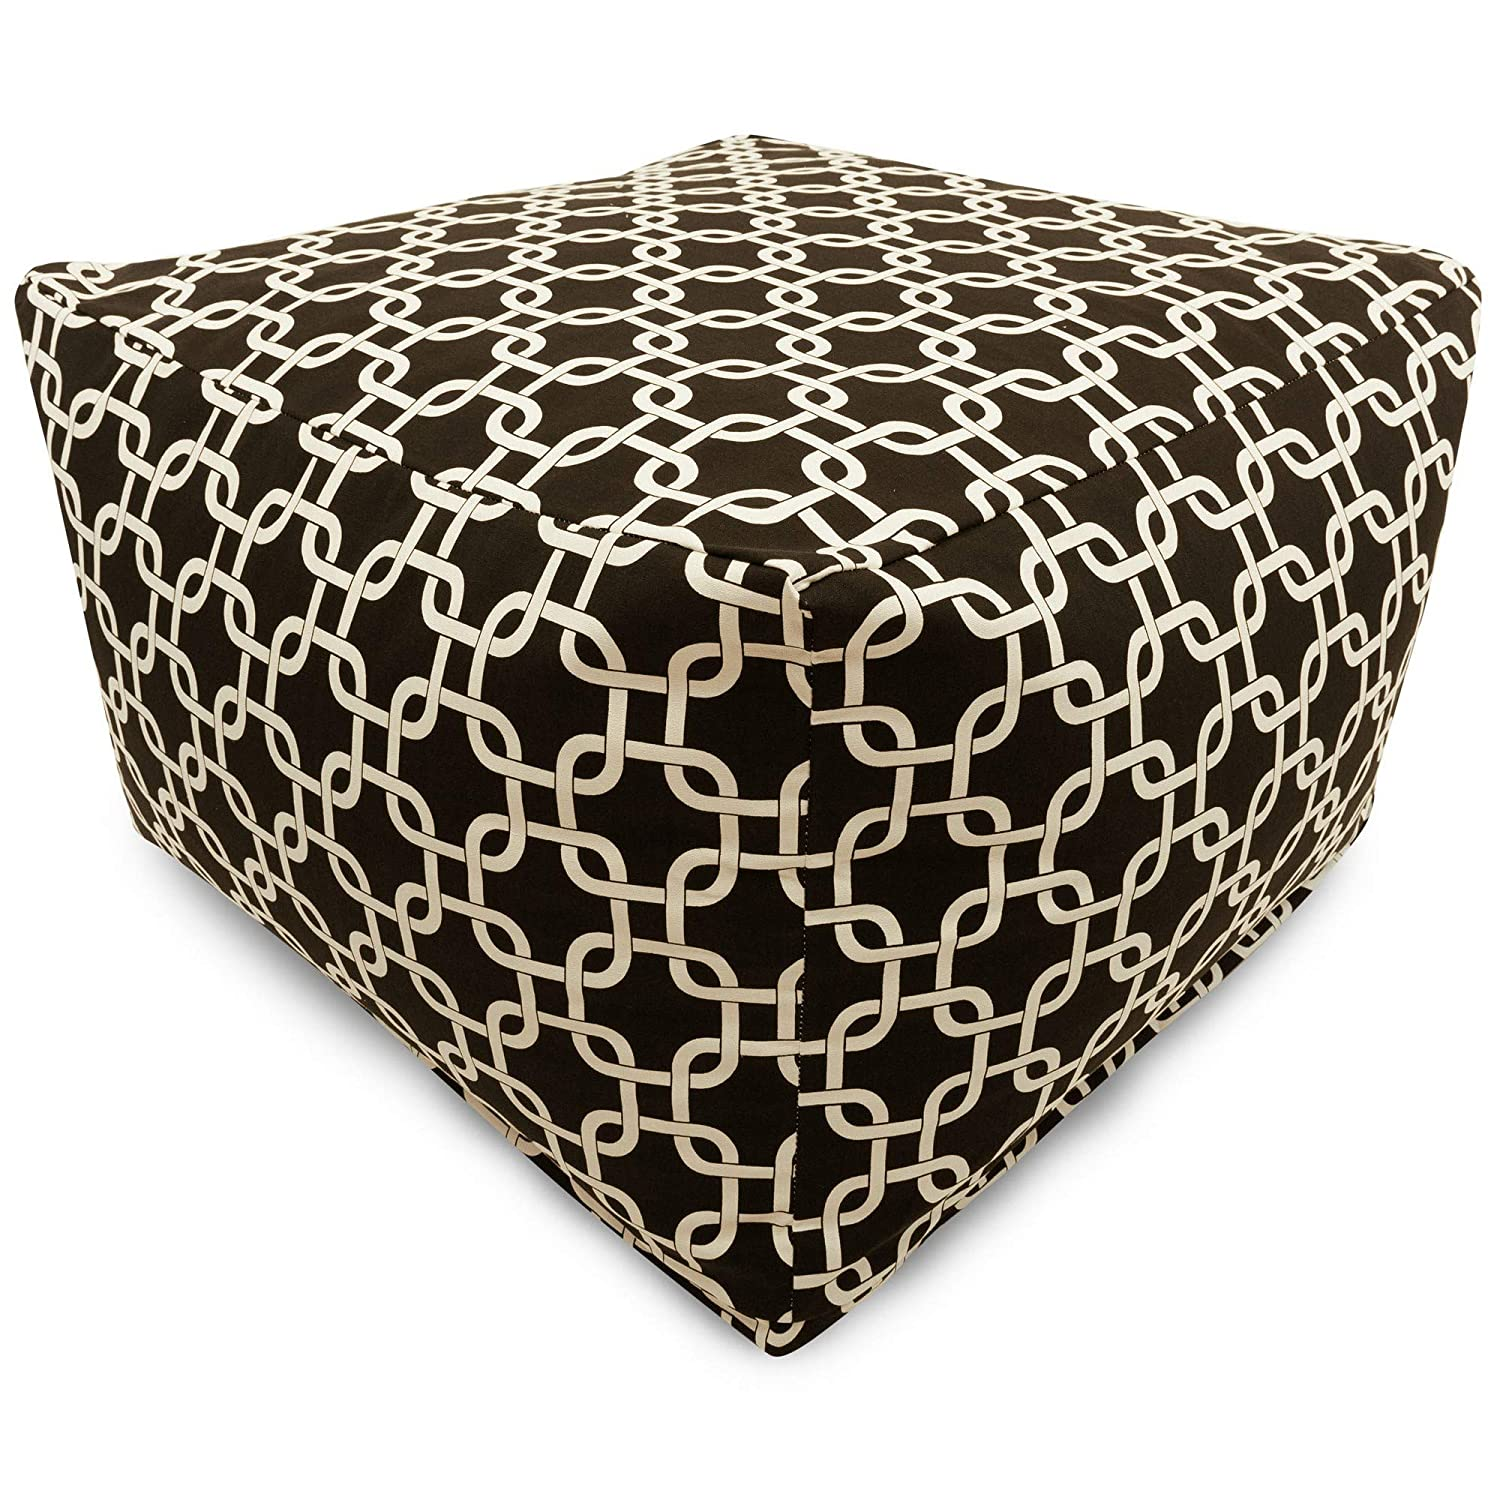 Majestic Home Goods Black Links Ottoman, Large